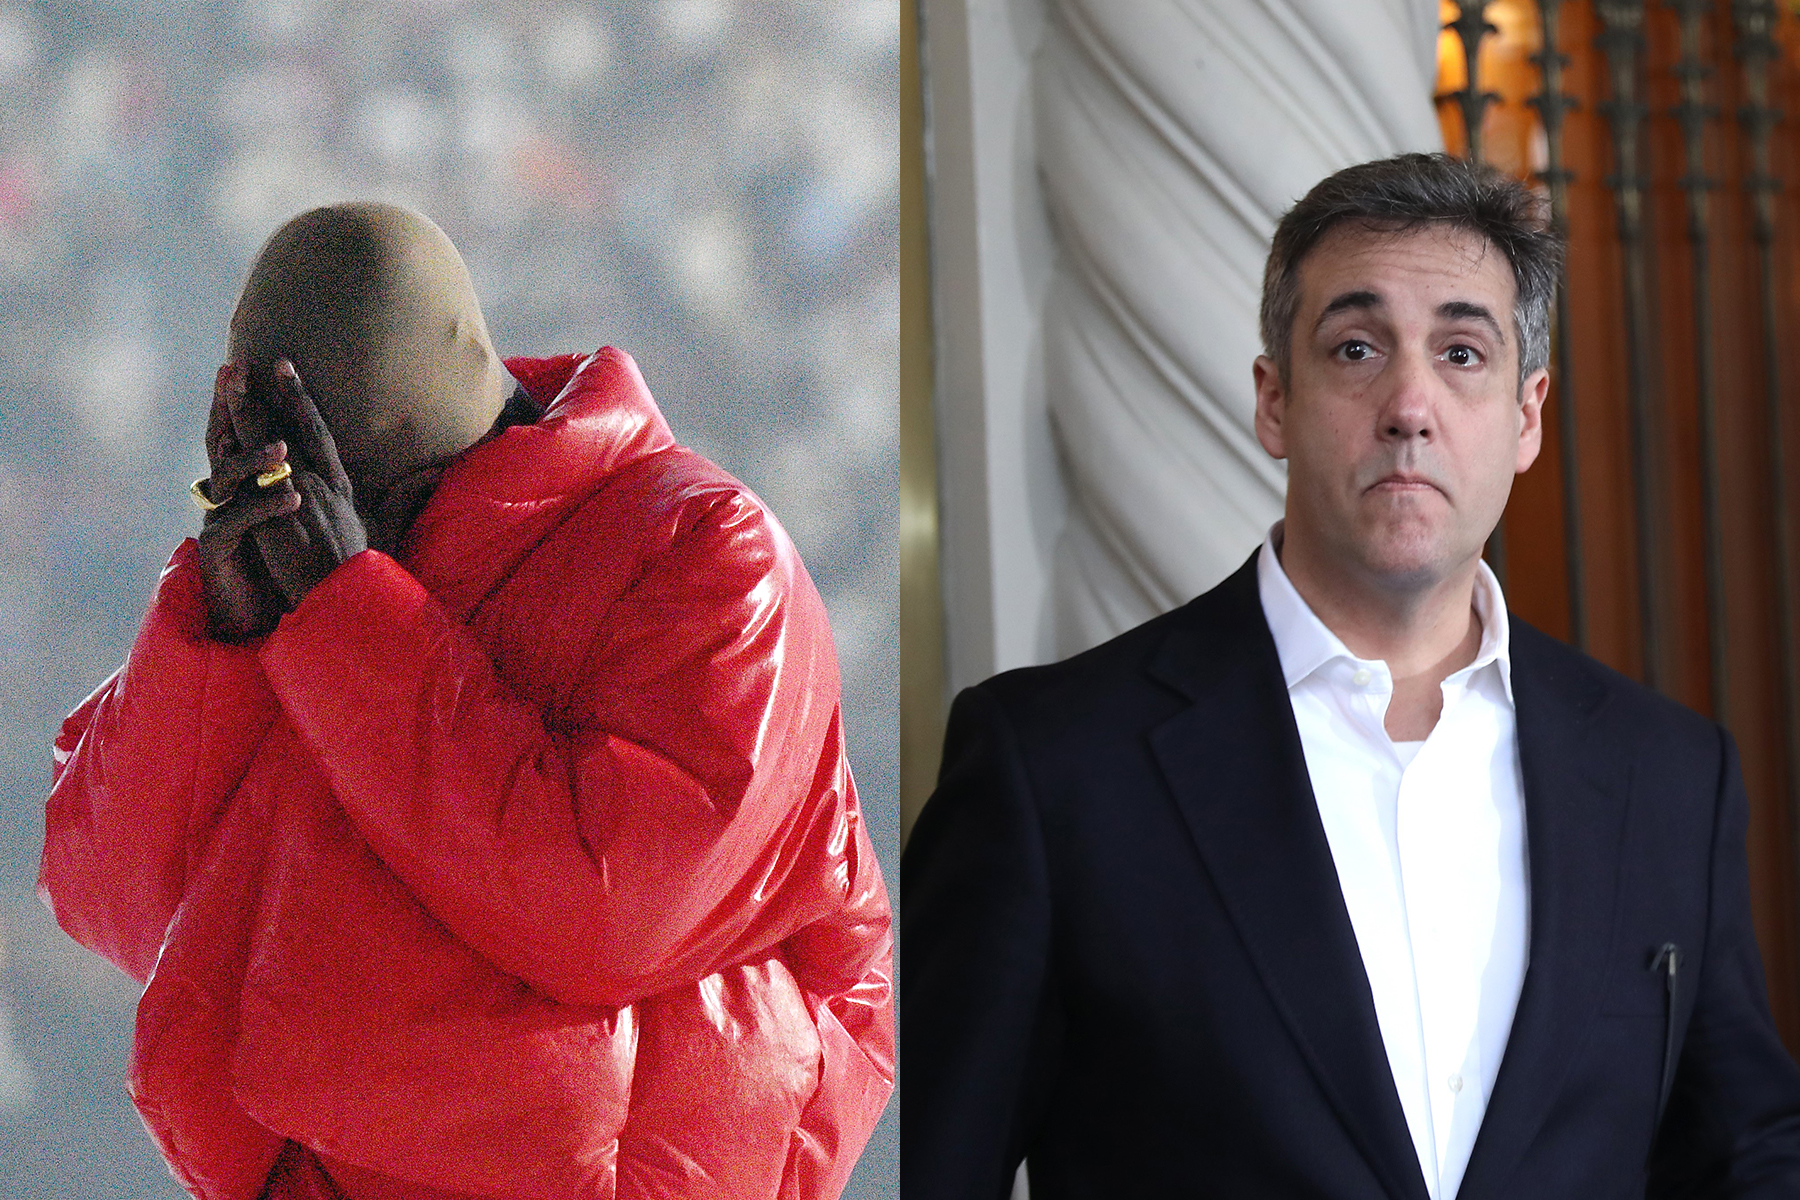 Kanye West Wore a Weird Mask While Getting Coffee With Michael Cohen